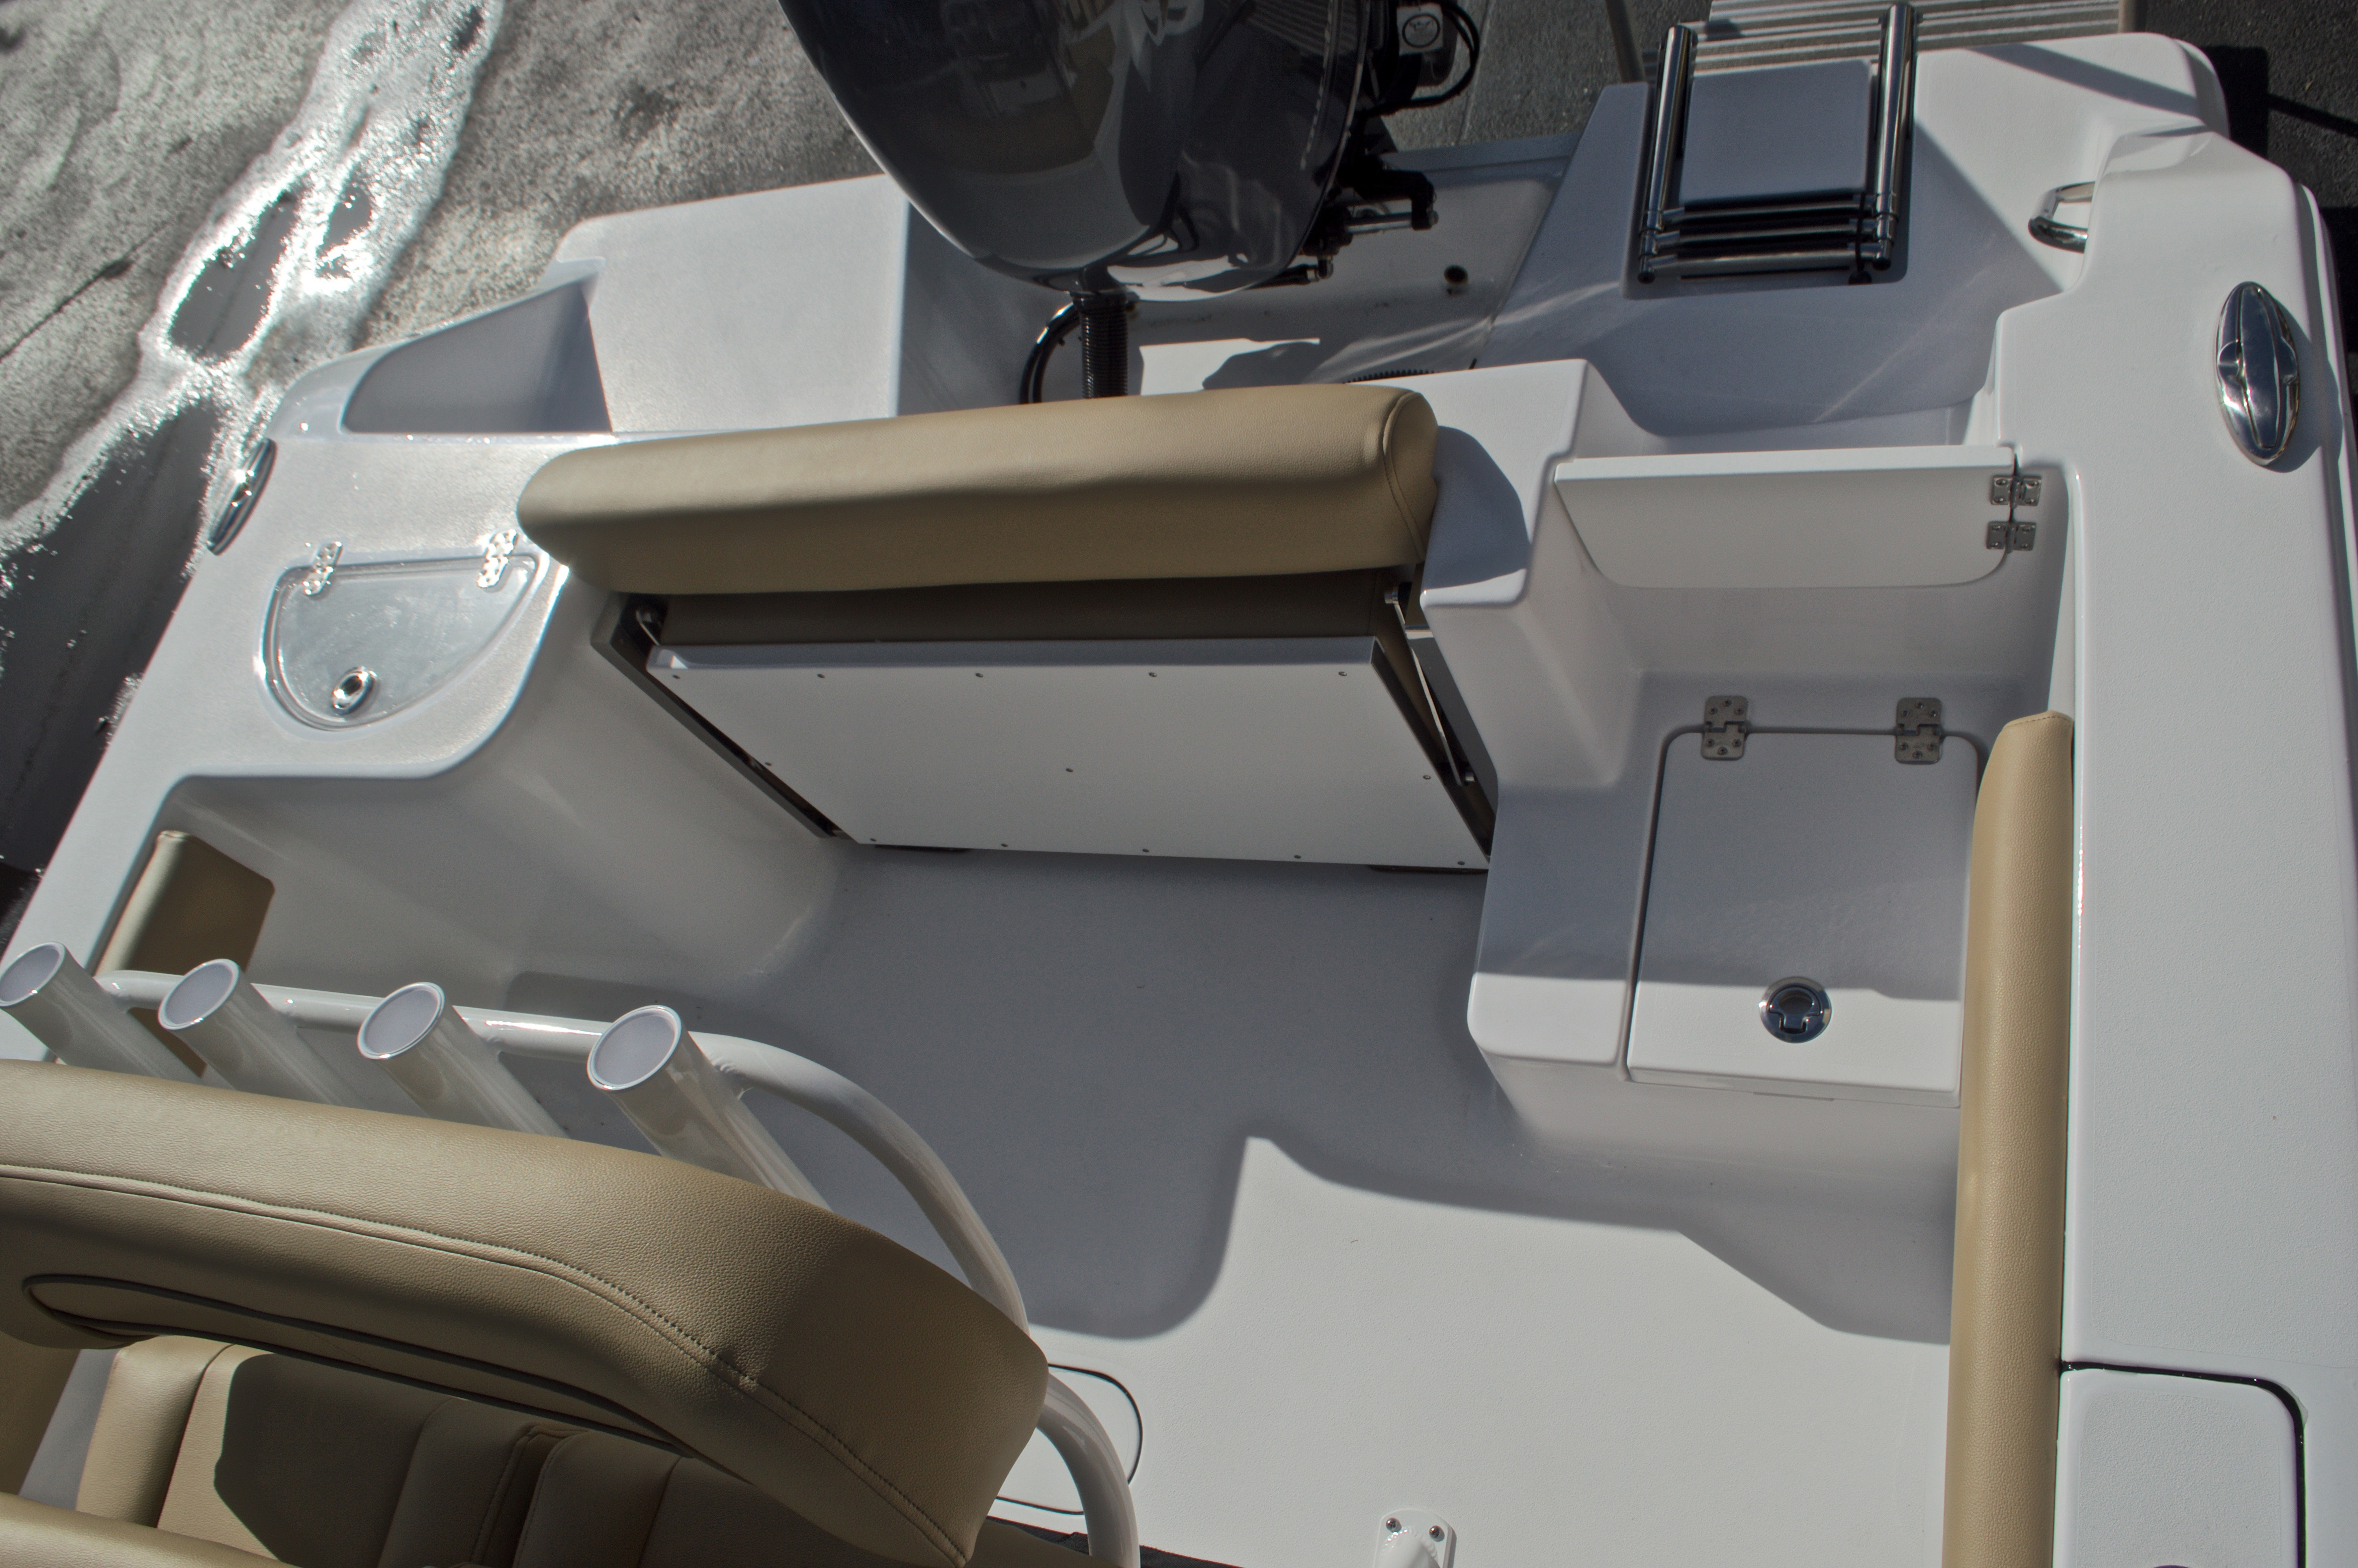 Thumbnail 14 for New 2017 Sportsman Open 212 Center Console boat for sale in West Palm Beach, FL